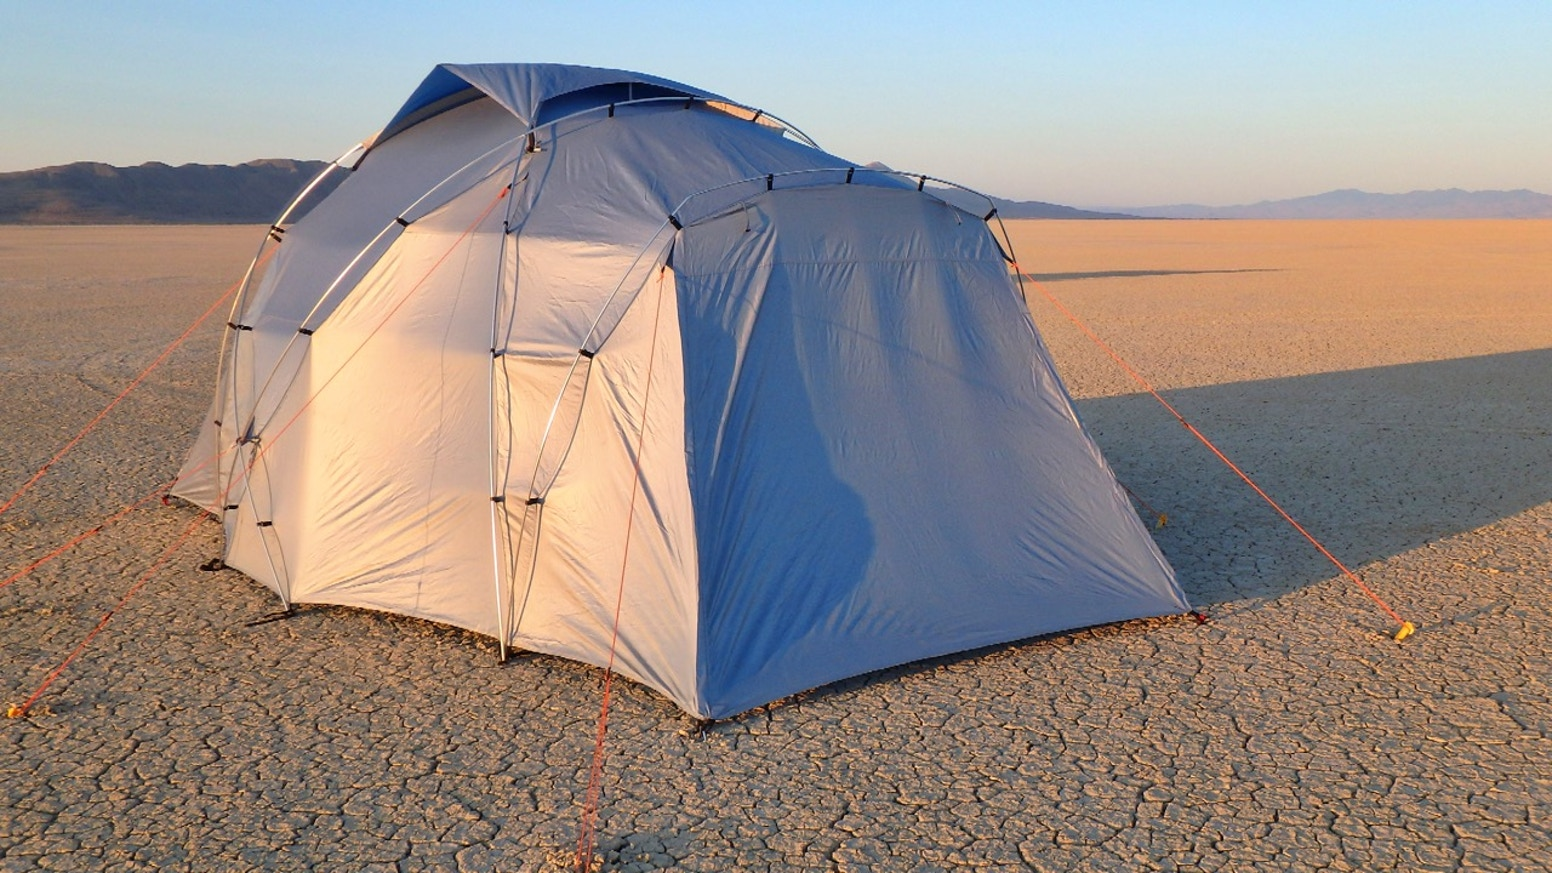 Don't bake in your tent! Stay cool and sleep in. Patent pending, heat reflective, light blocking, and  designed for wind & dust.